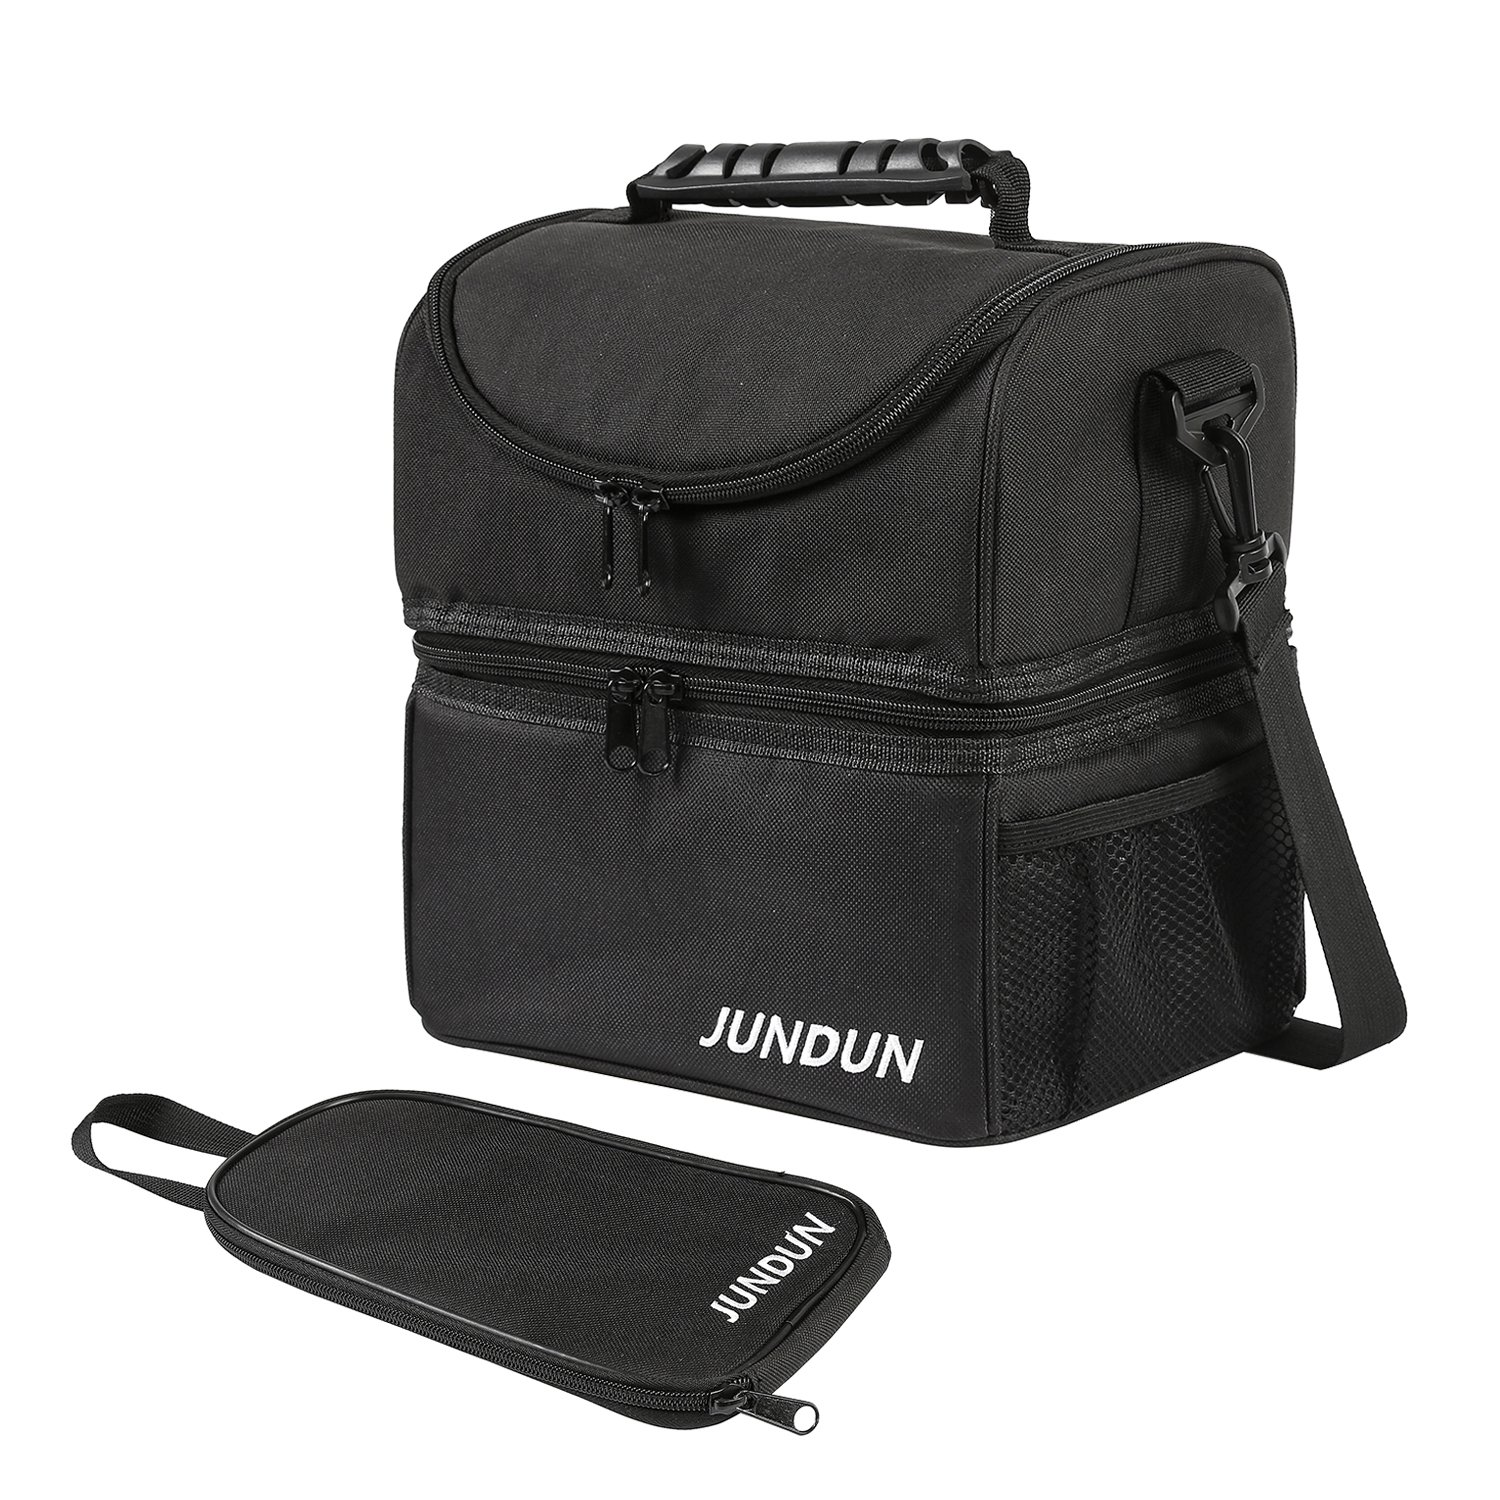 f18f61ca6011 JUNDUN Lunch Bag Double Insulated Cooler Tote Lunch Box with Shoulder Strap  for Men  Women (Black)  Amazon.co.uk  Kitchen   Home